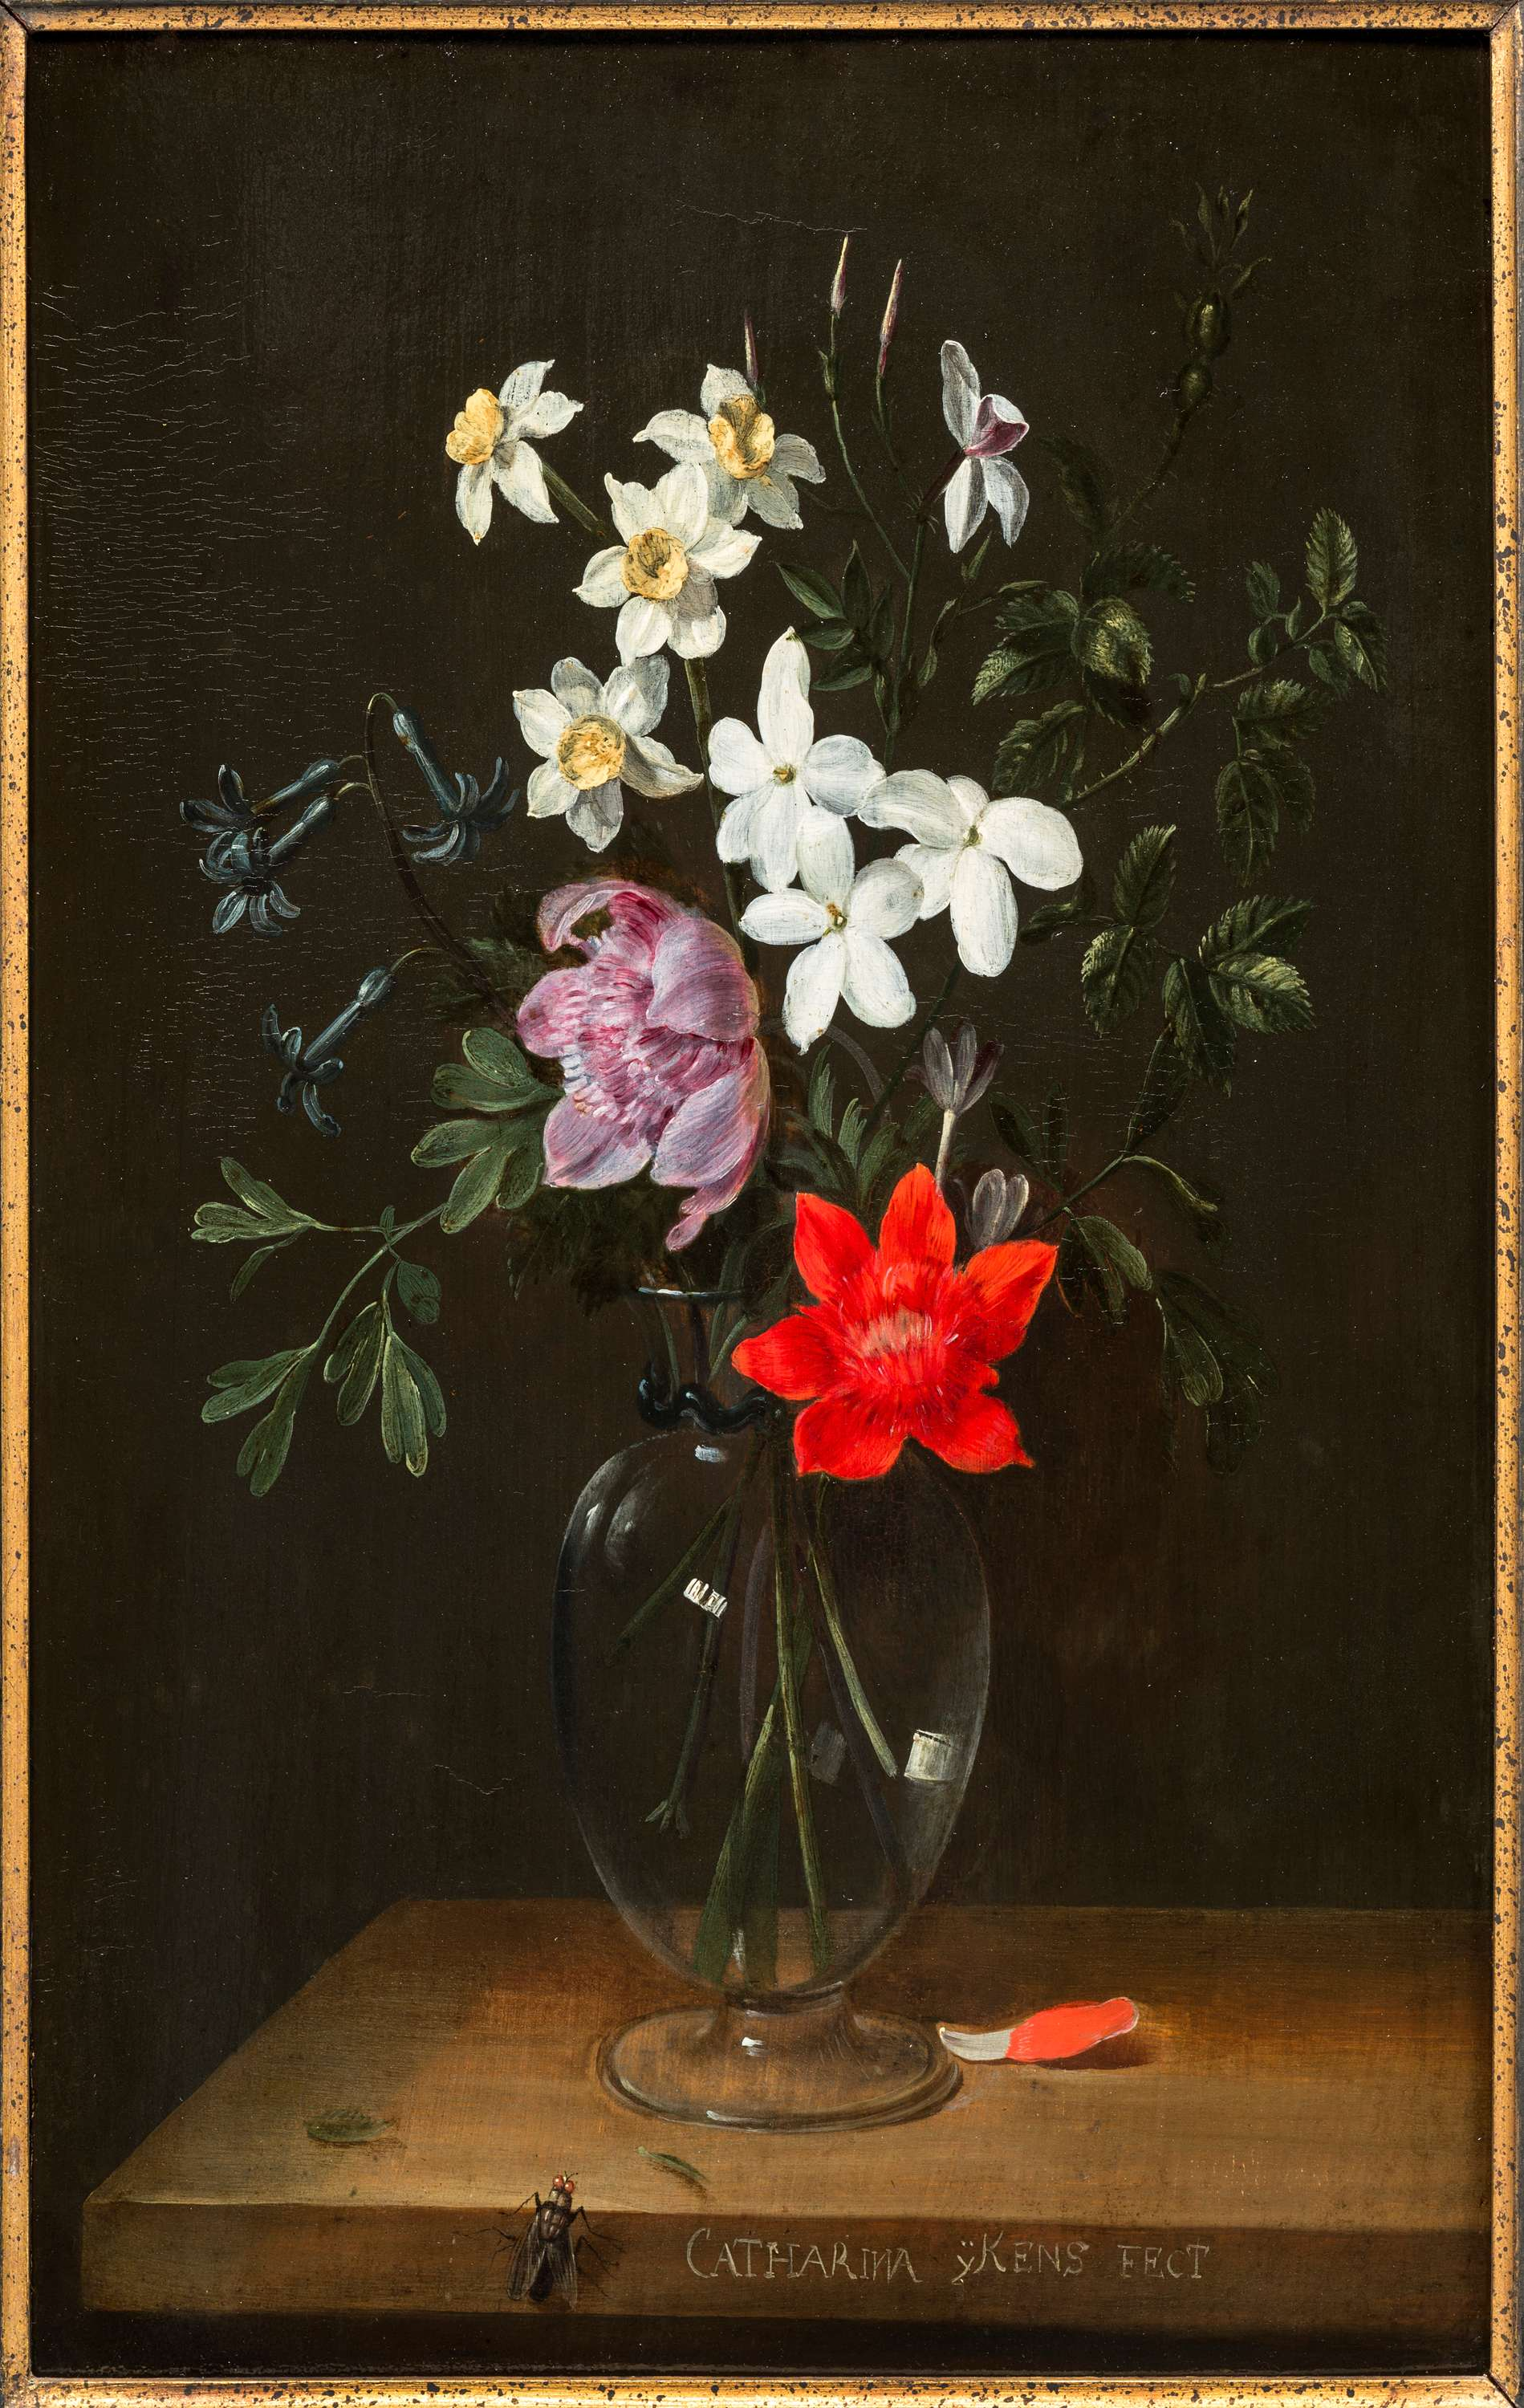 Filecatharina ykens i flower still life in a glass vase filecatharina ykens i flower still life in a glass vase 1032015t16441 reviewsmspy